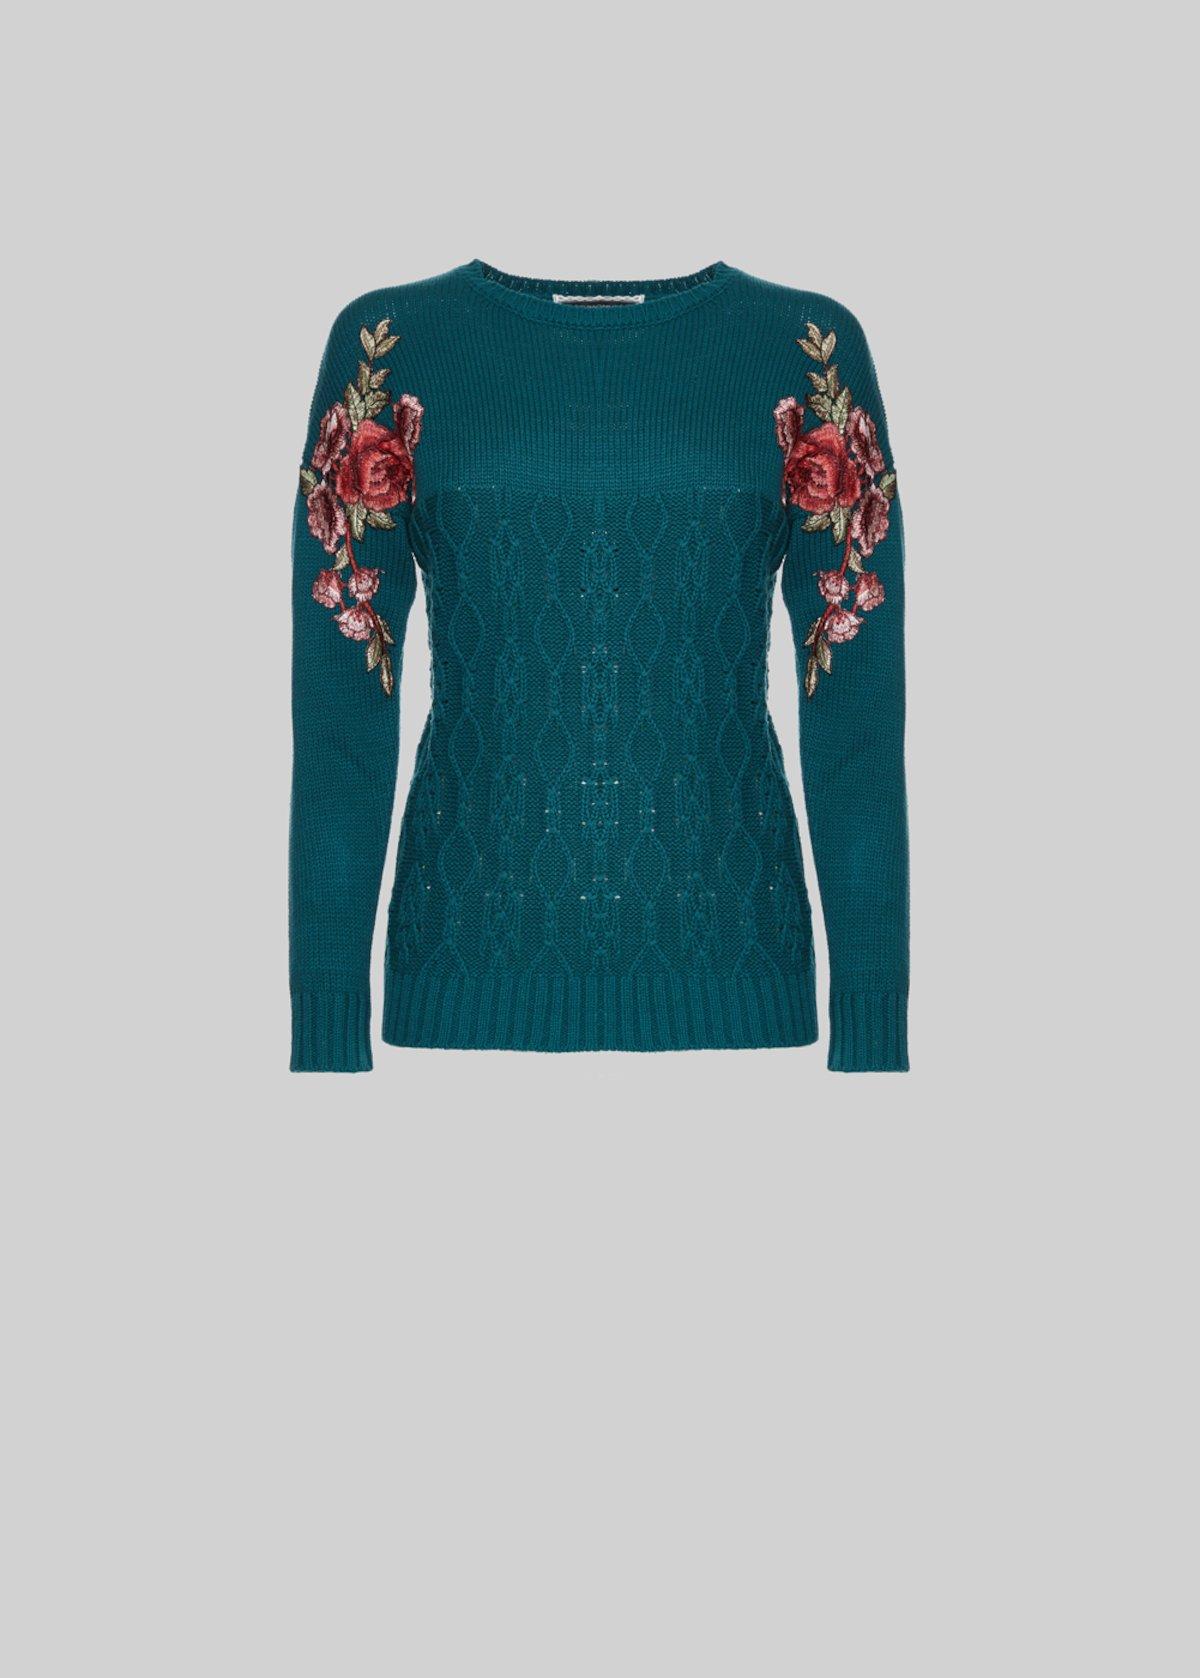 Marbella sweater with flower patch detail